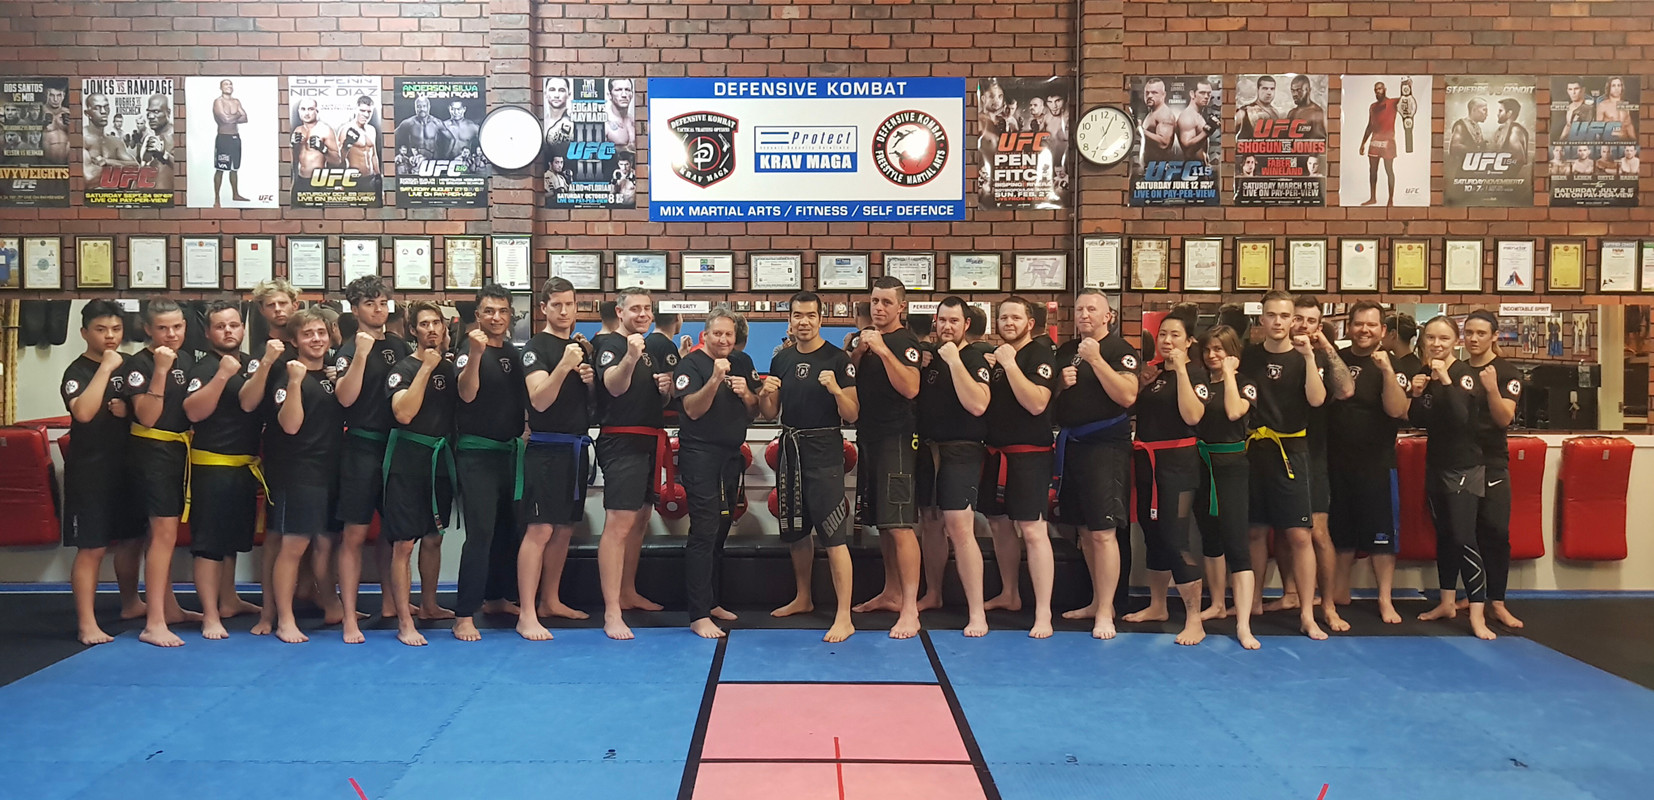 6. Krav Maga Group - March 2019.jpg